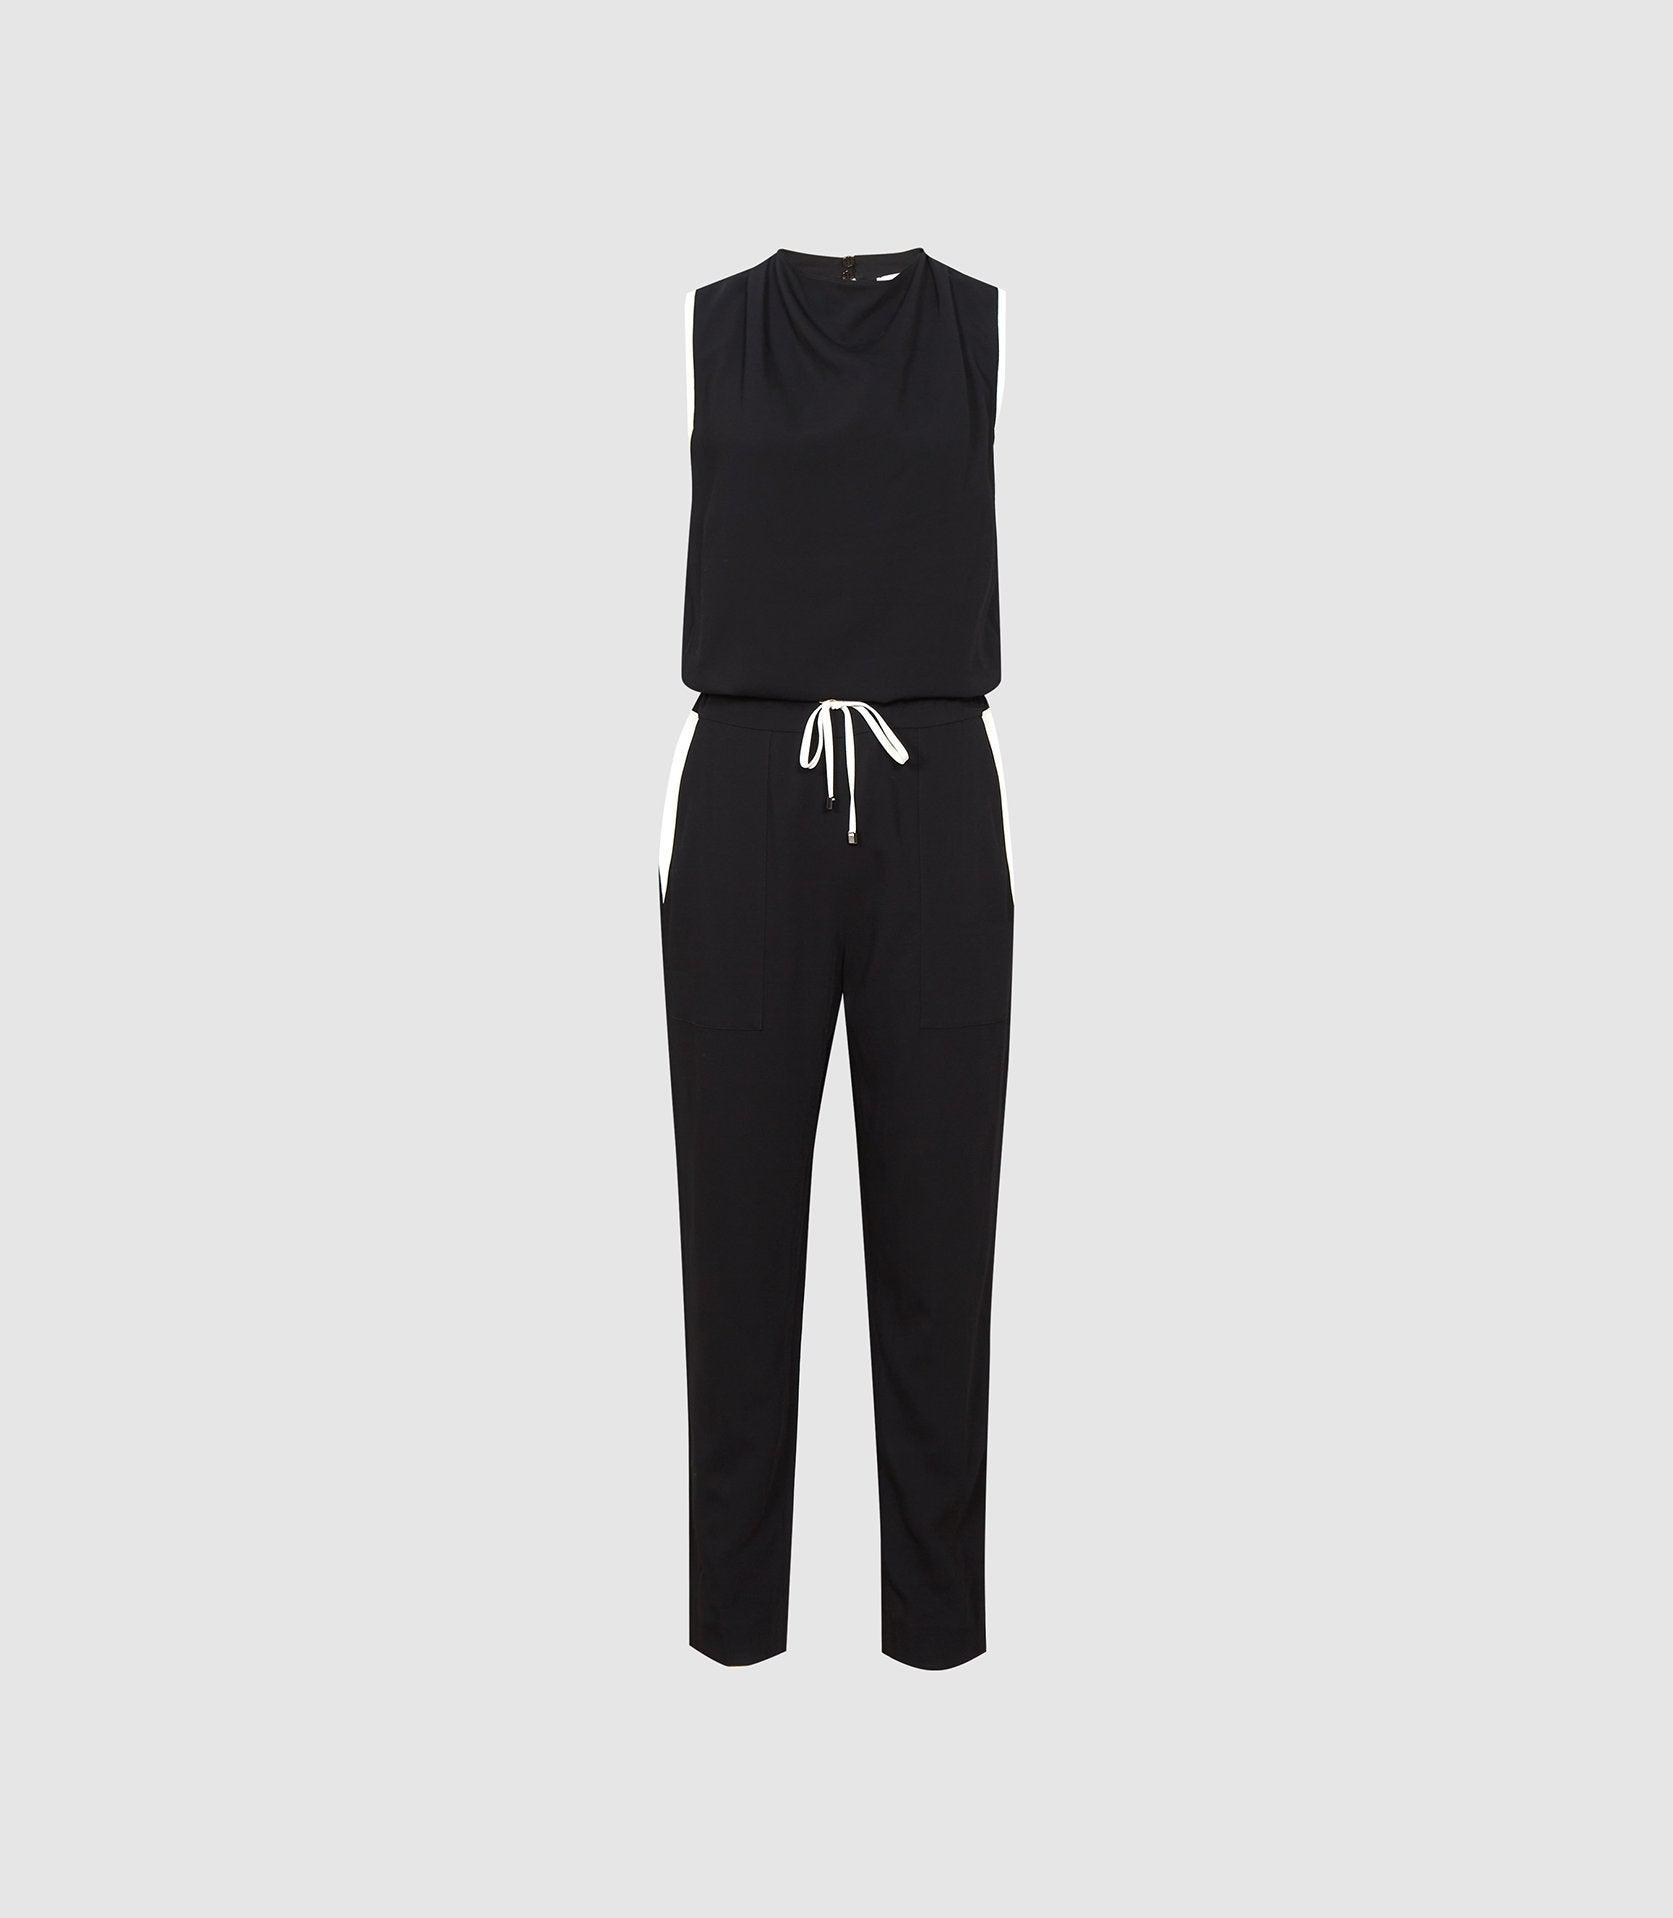 CLAUDIA - SLEEVELESS JUMPSUIT WITH CONTRAST TIPPING 4